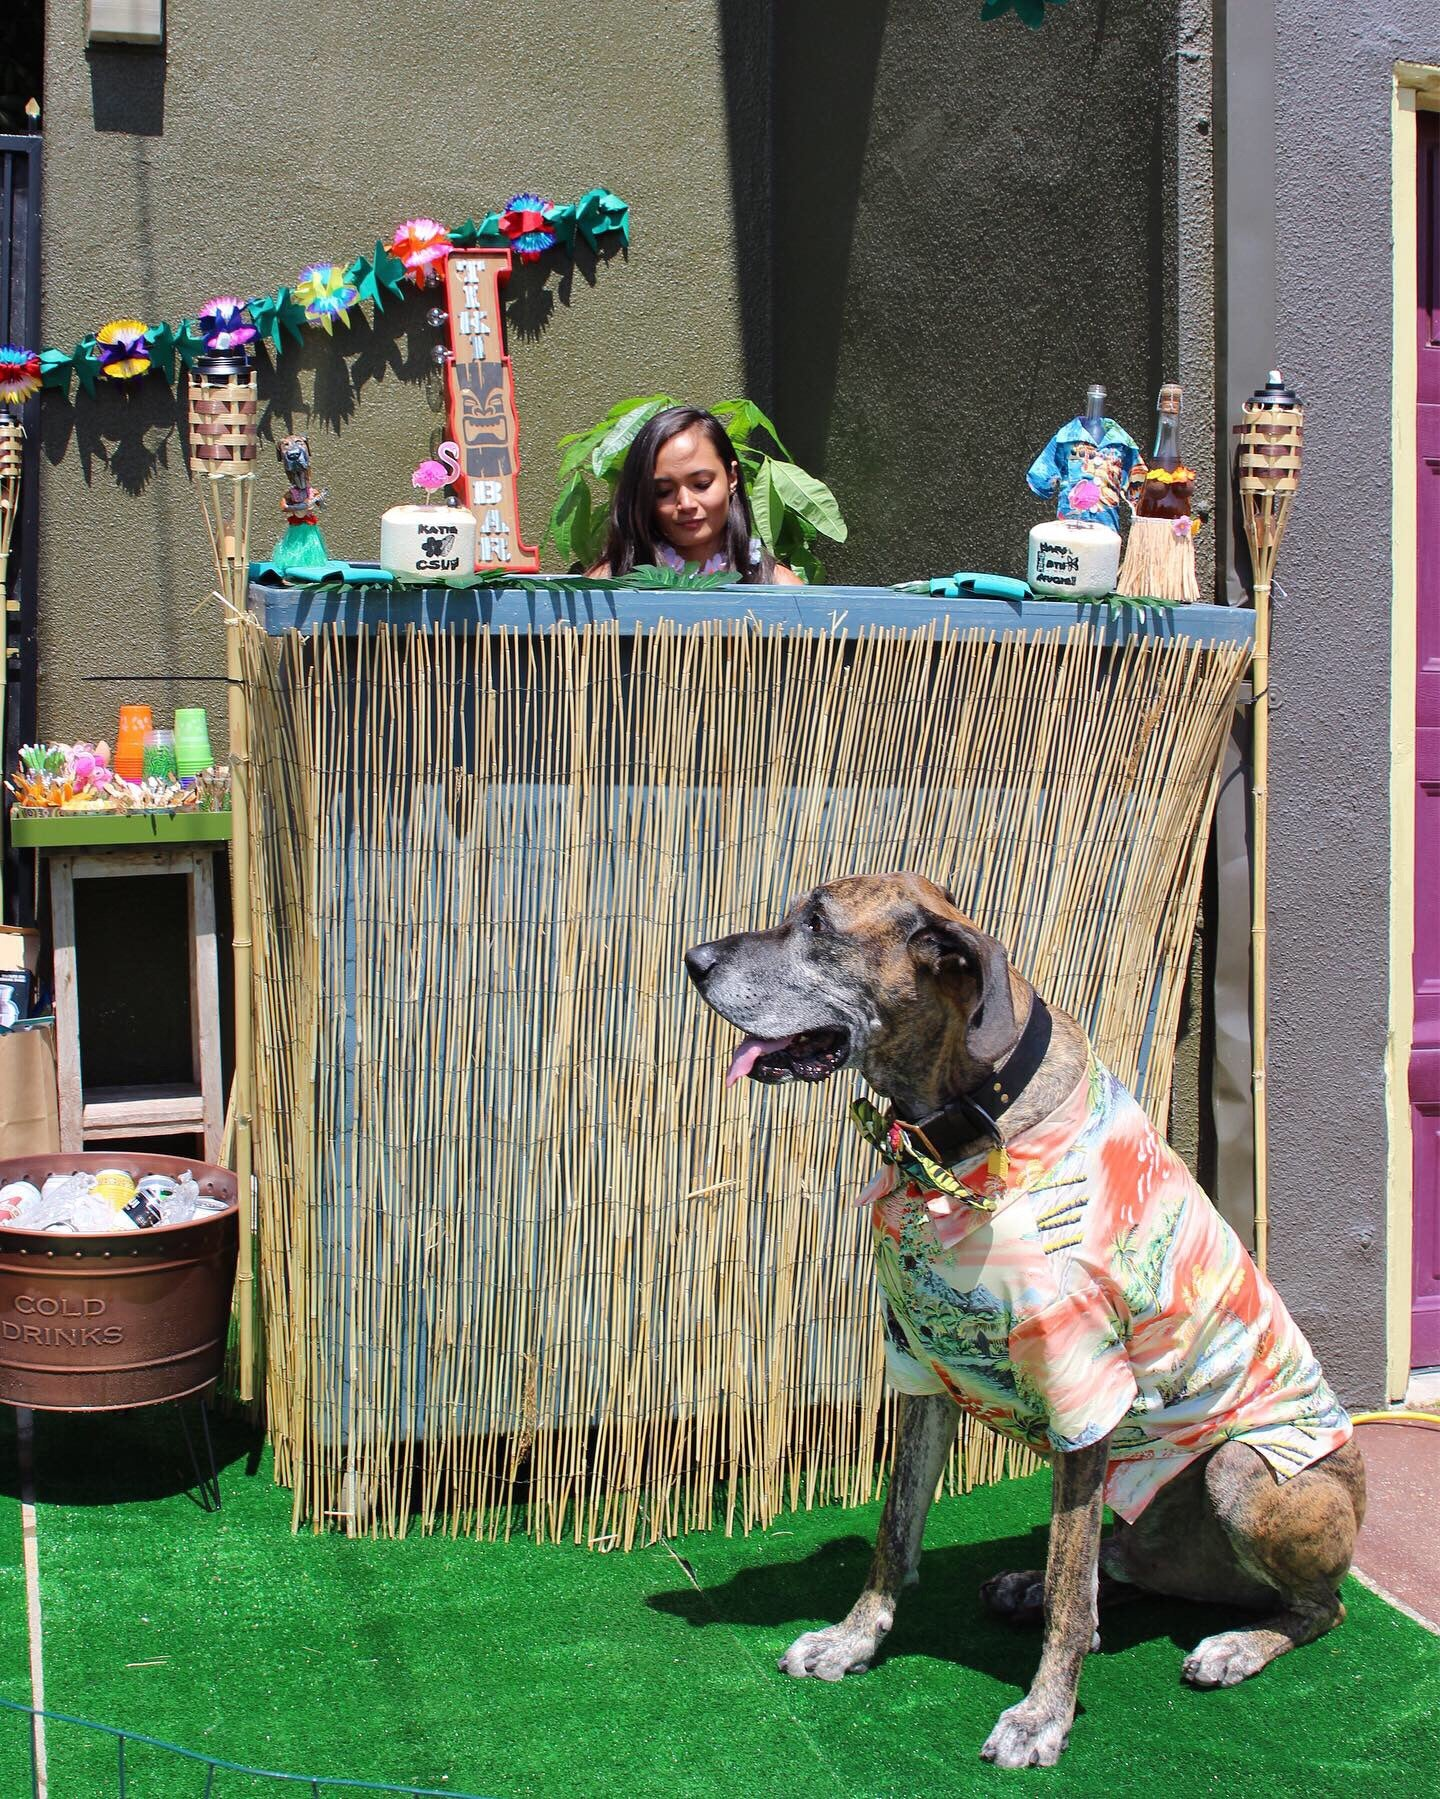 Dog Birthday Party Ideas | Luau Themed Parties for Dogs